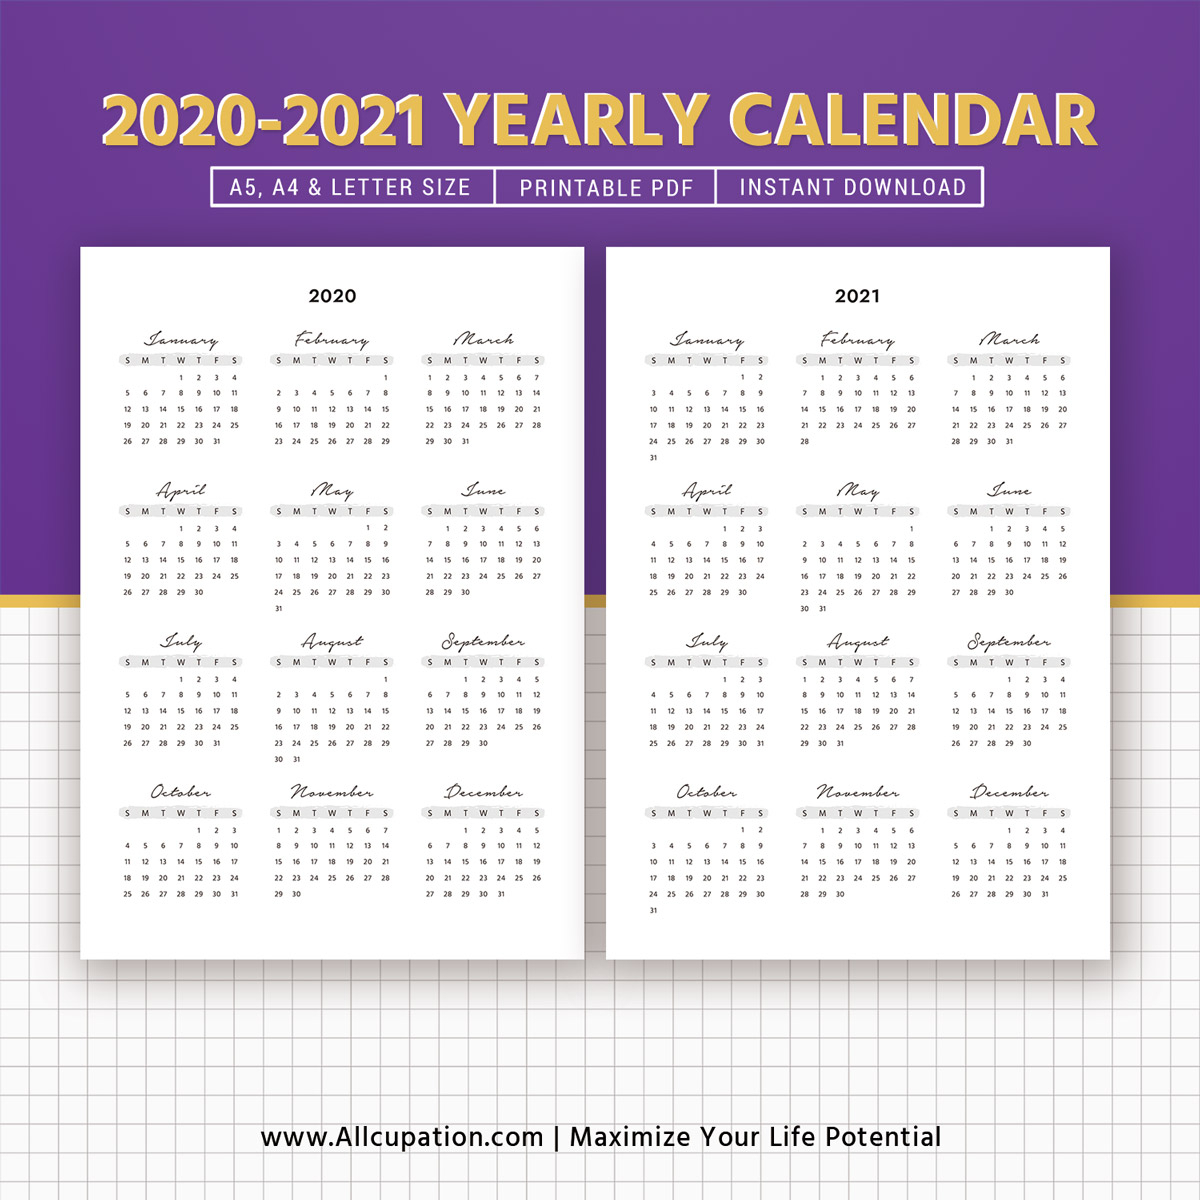 2020-2021 Yearly Calendar, Year At A Glance, Printable